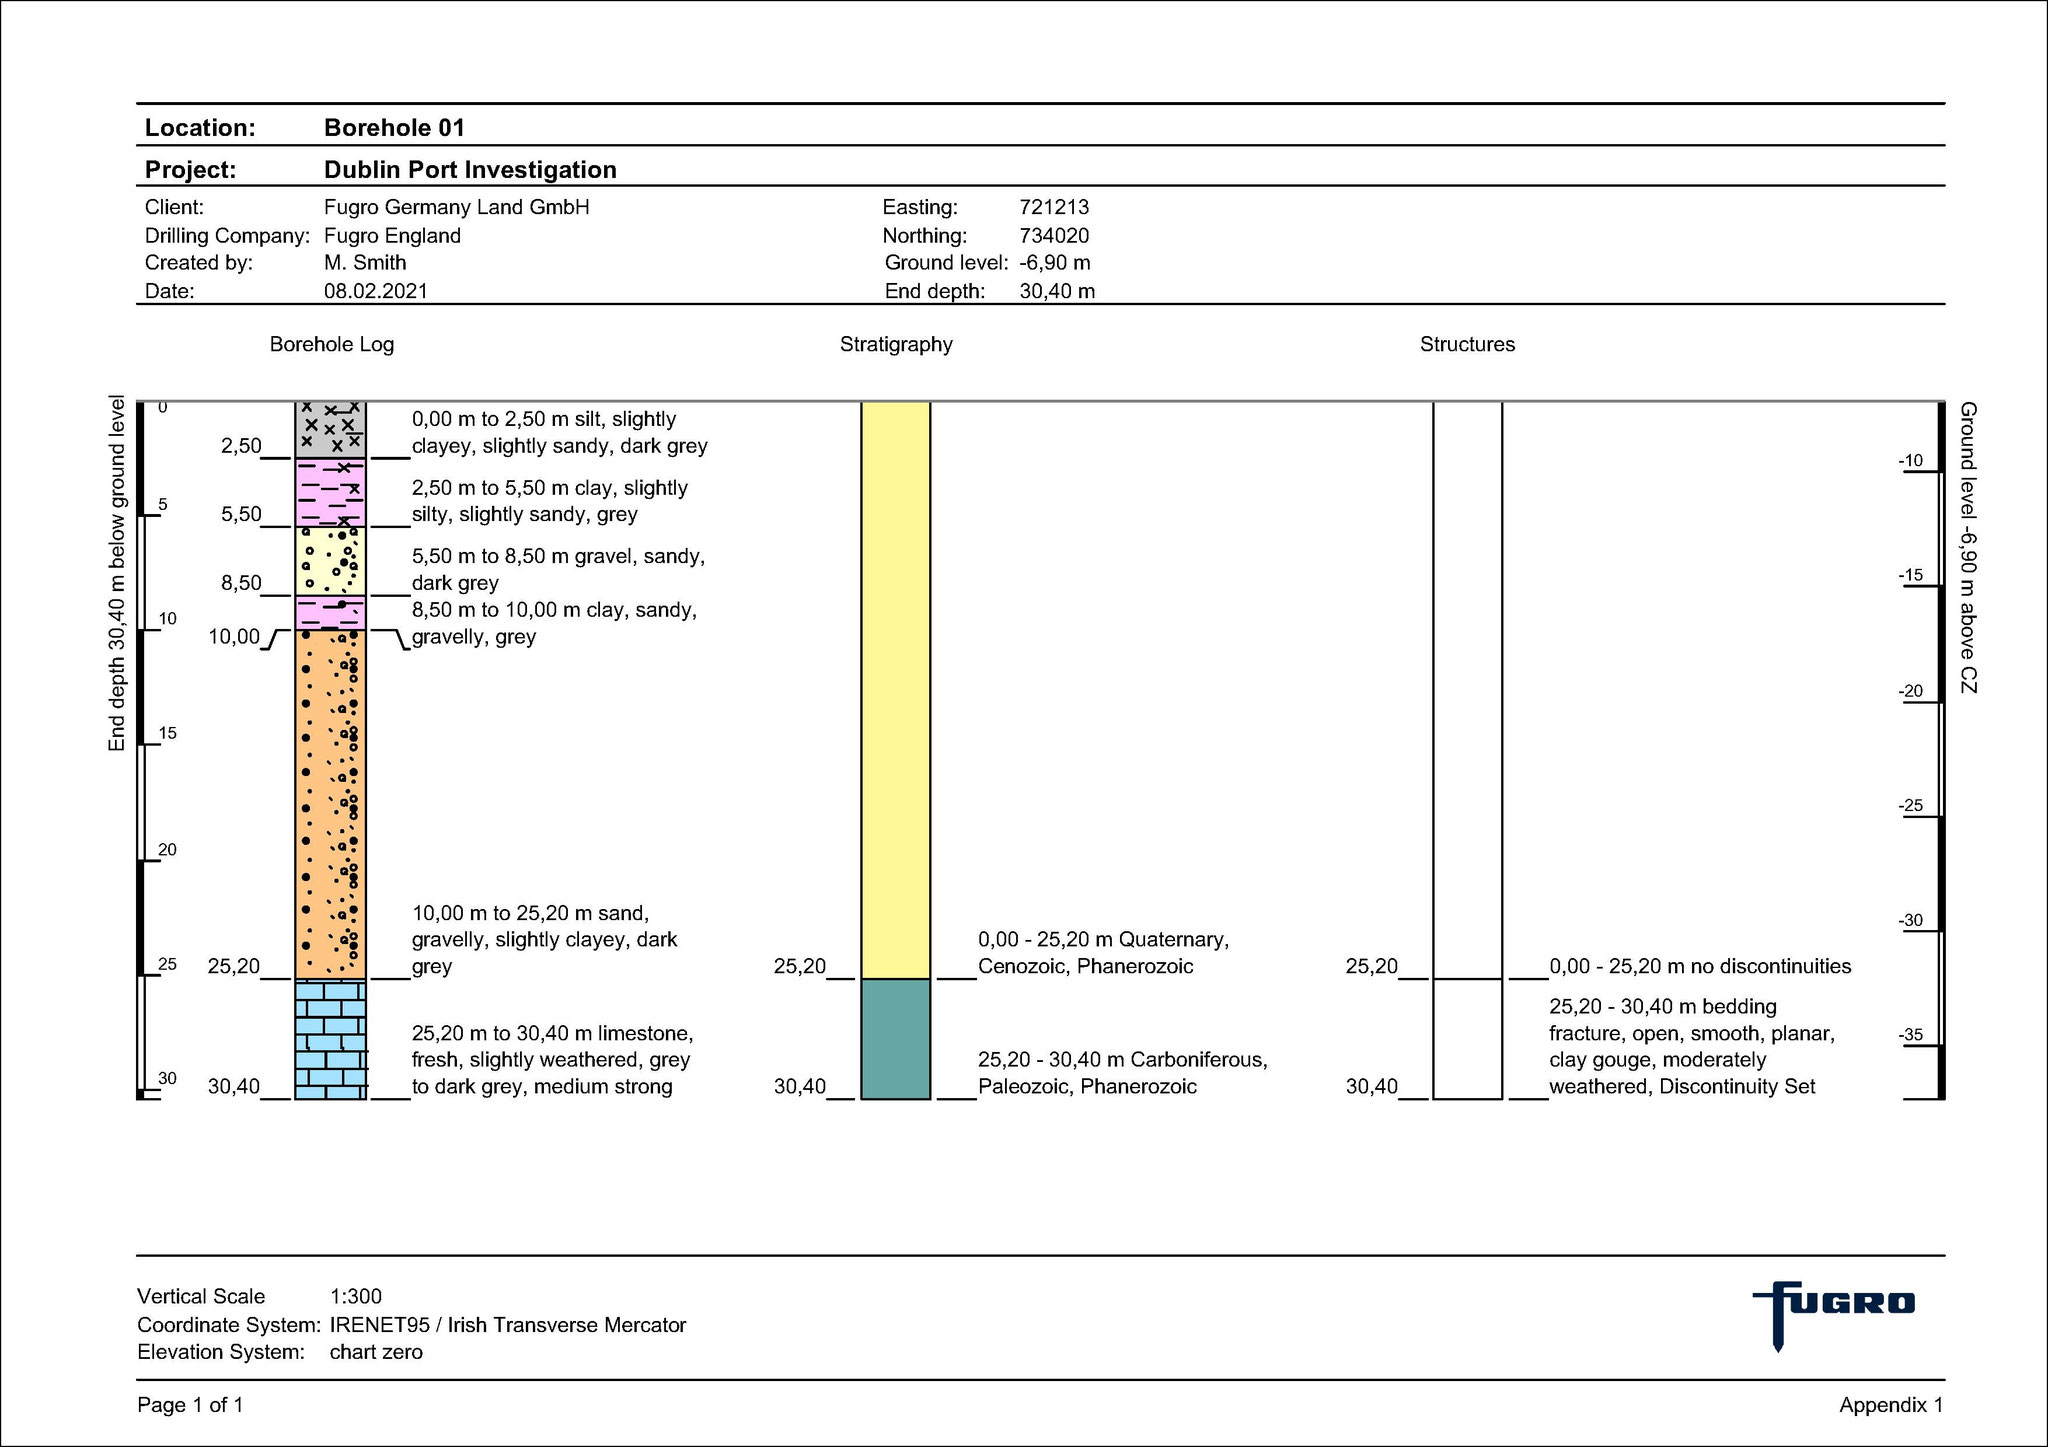 GeODin layout for the display of layer data, stratigraphy and discontinuities